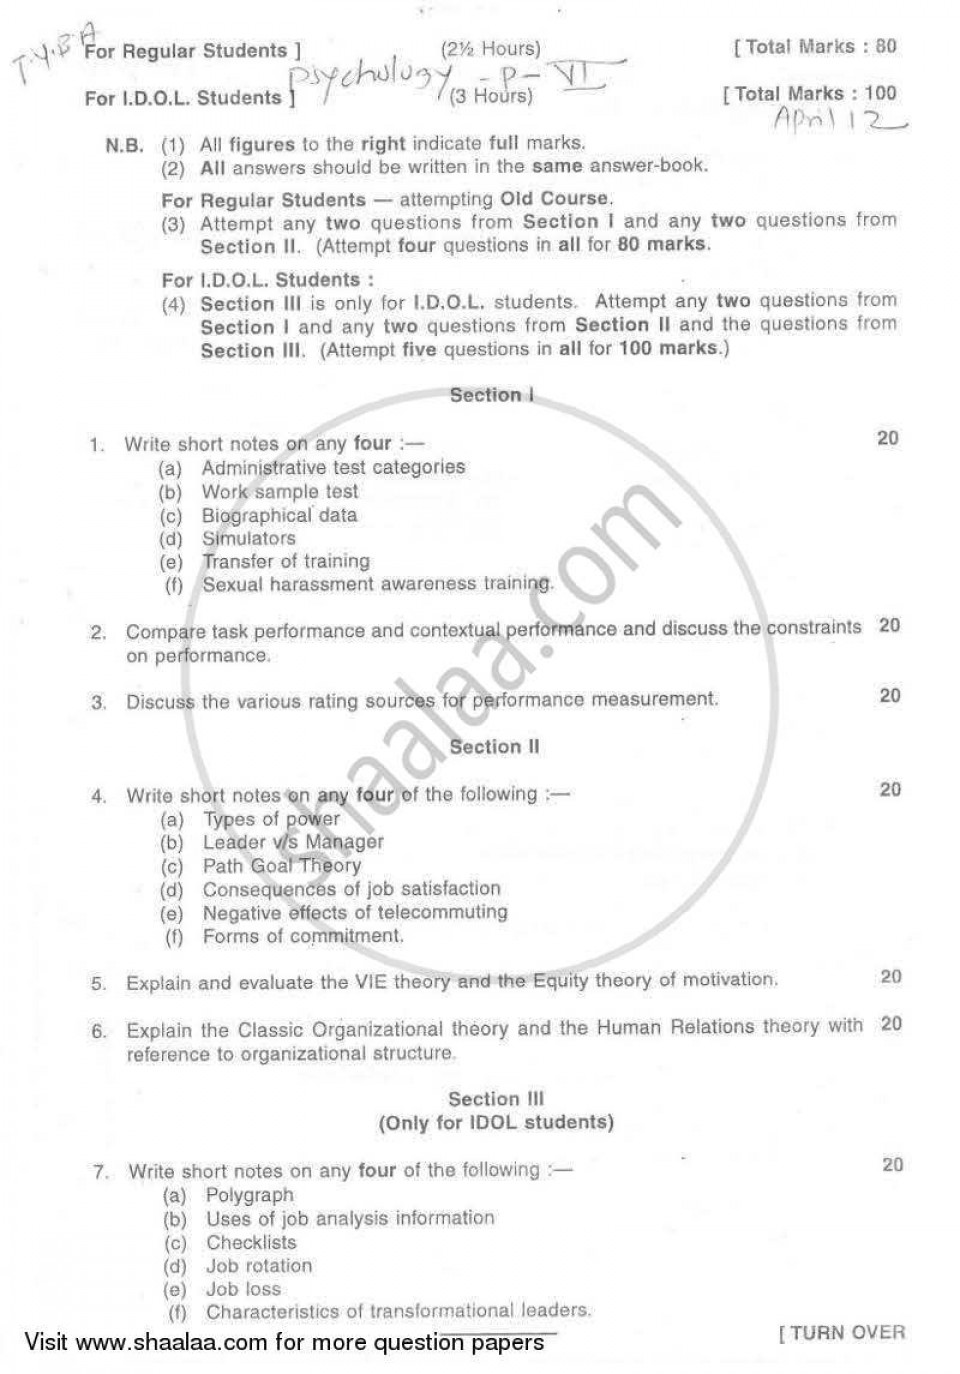 017 Psychologyearch Paper On Dreams University Of Mumbai Bachelor Industrial Organizational T Y Yearly Pattern Semester Tyba 2011 29a03925dfc524f2aa4cb10e4d3da996a Singular Psychology Research News Articles 960